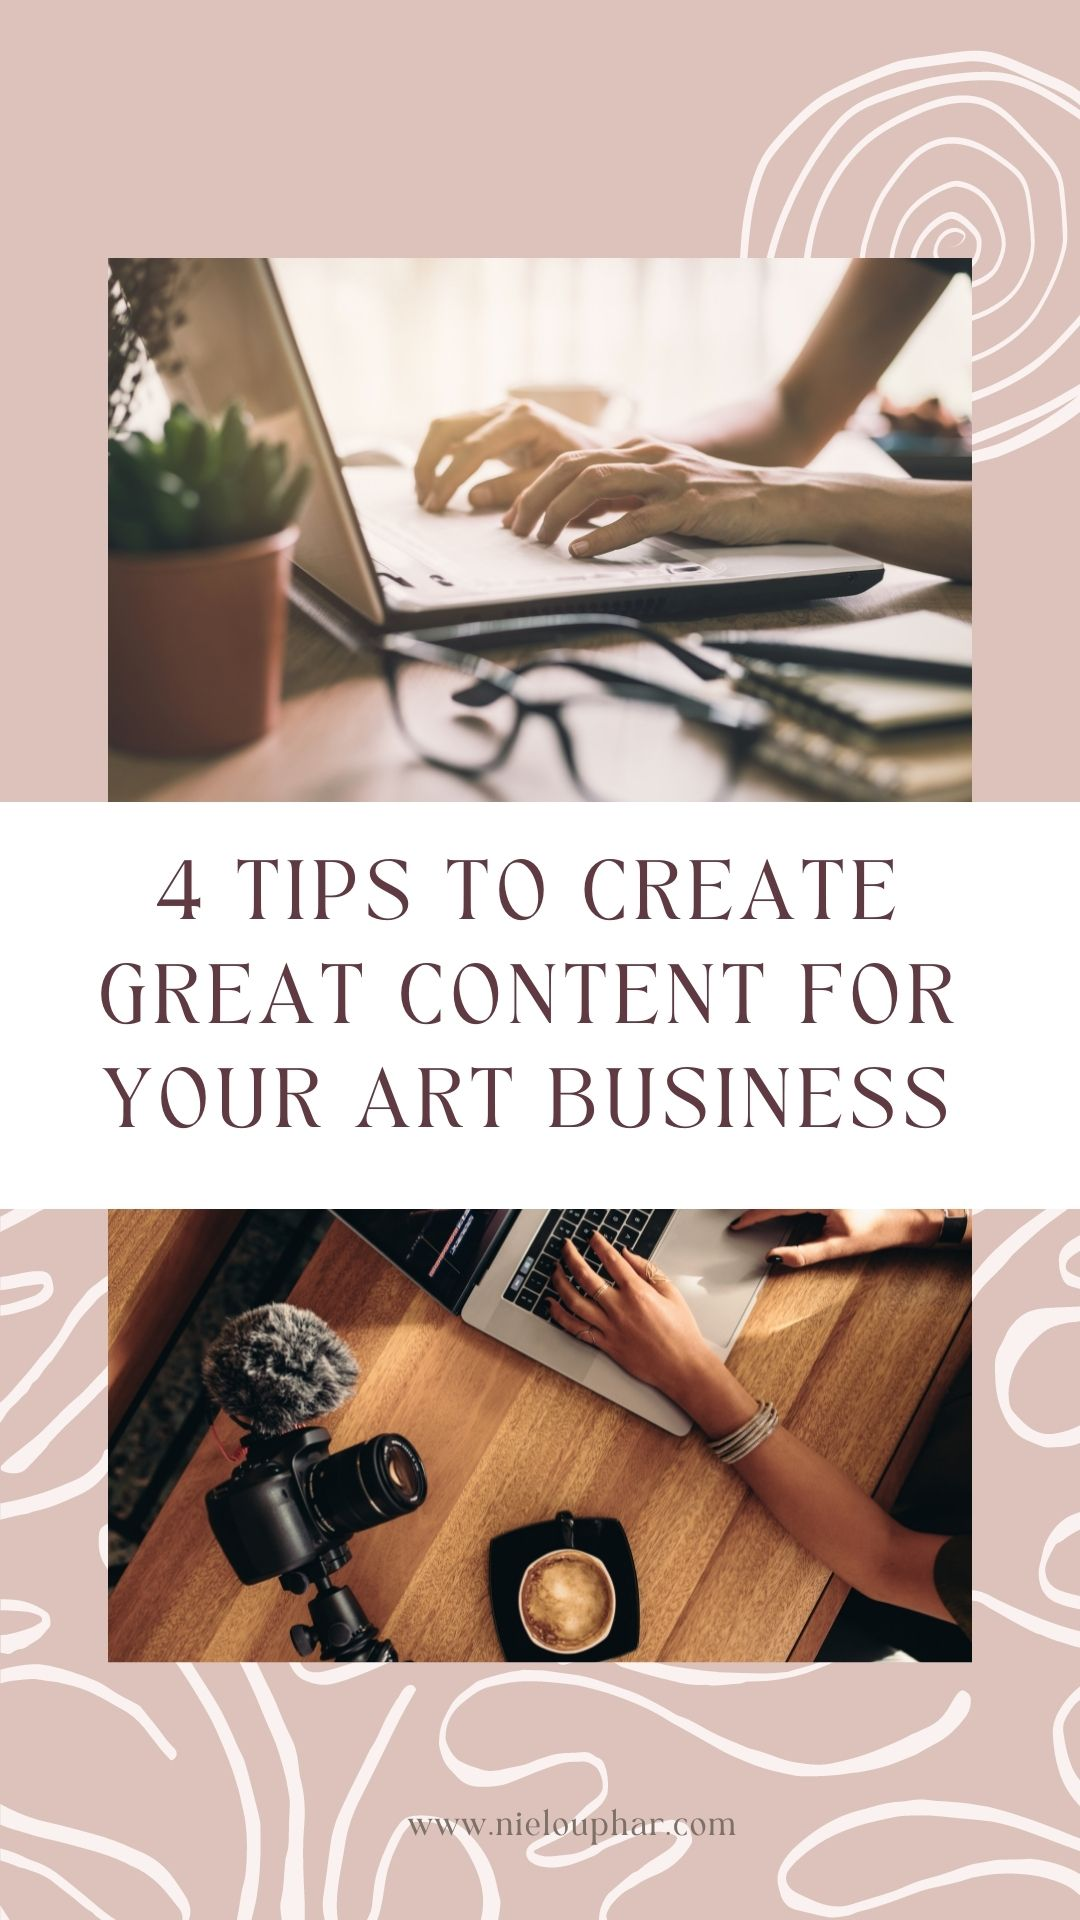 how to create content for art business